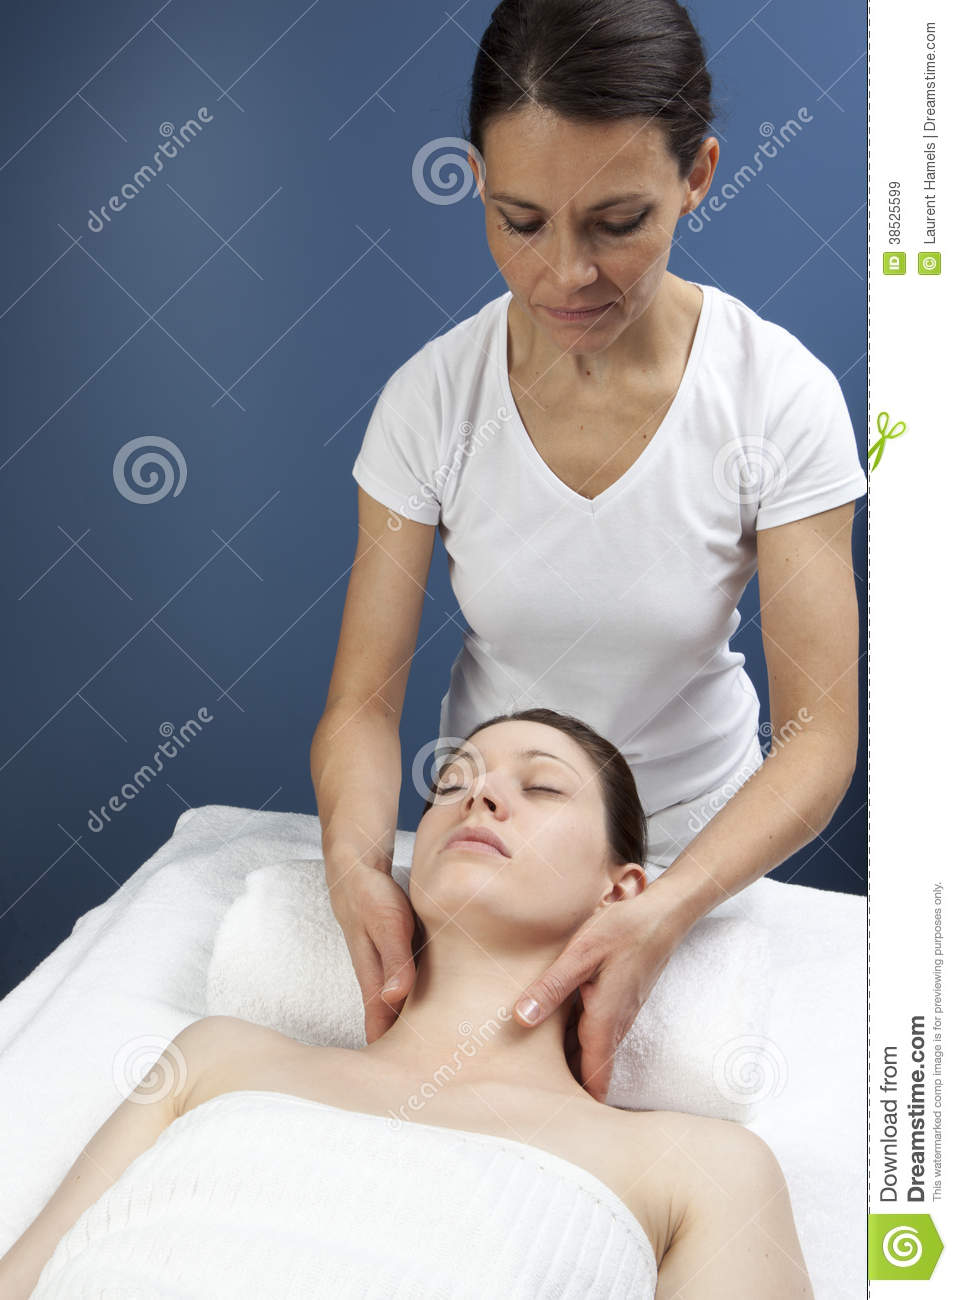 Acupressure Reflexology Ayurveda Massage Stock Image ...